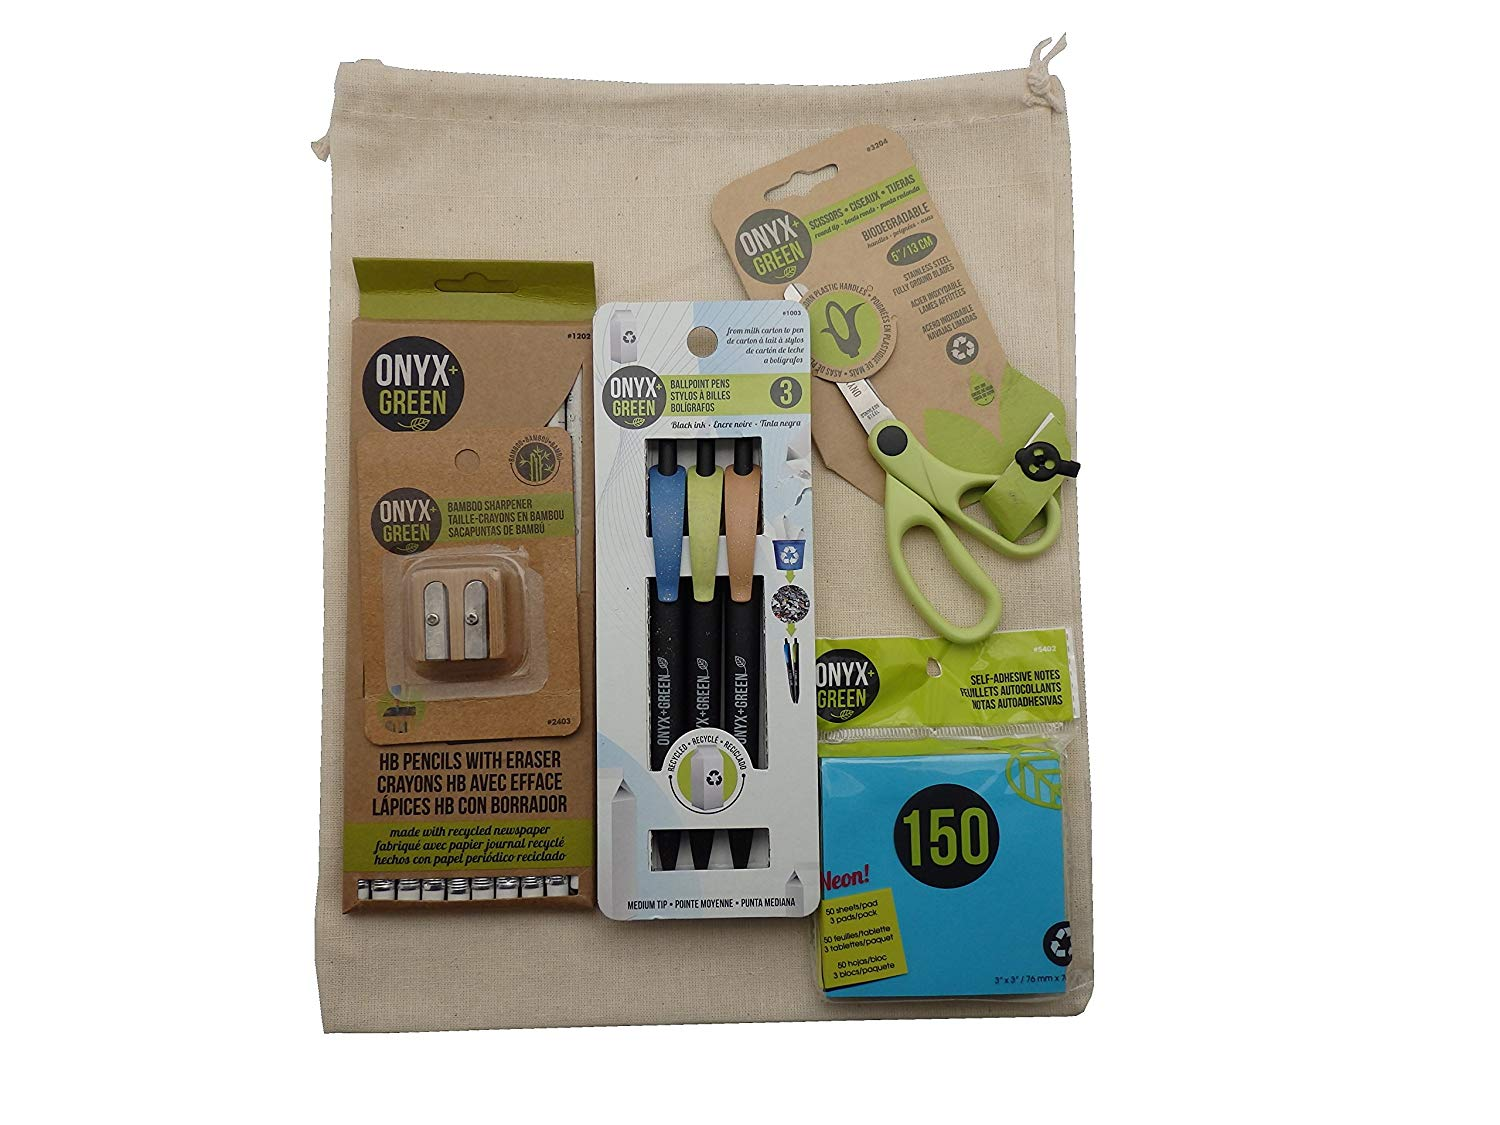 Recycled Sustainable Materials Green Eco Friendly School Supplies Kit - Scissors Sticky Notes Pen Pencils Erasers Sharpener - in a Natural Burlap Carry Bag